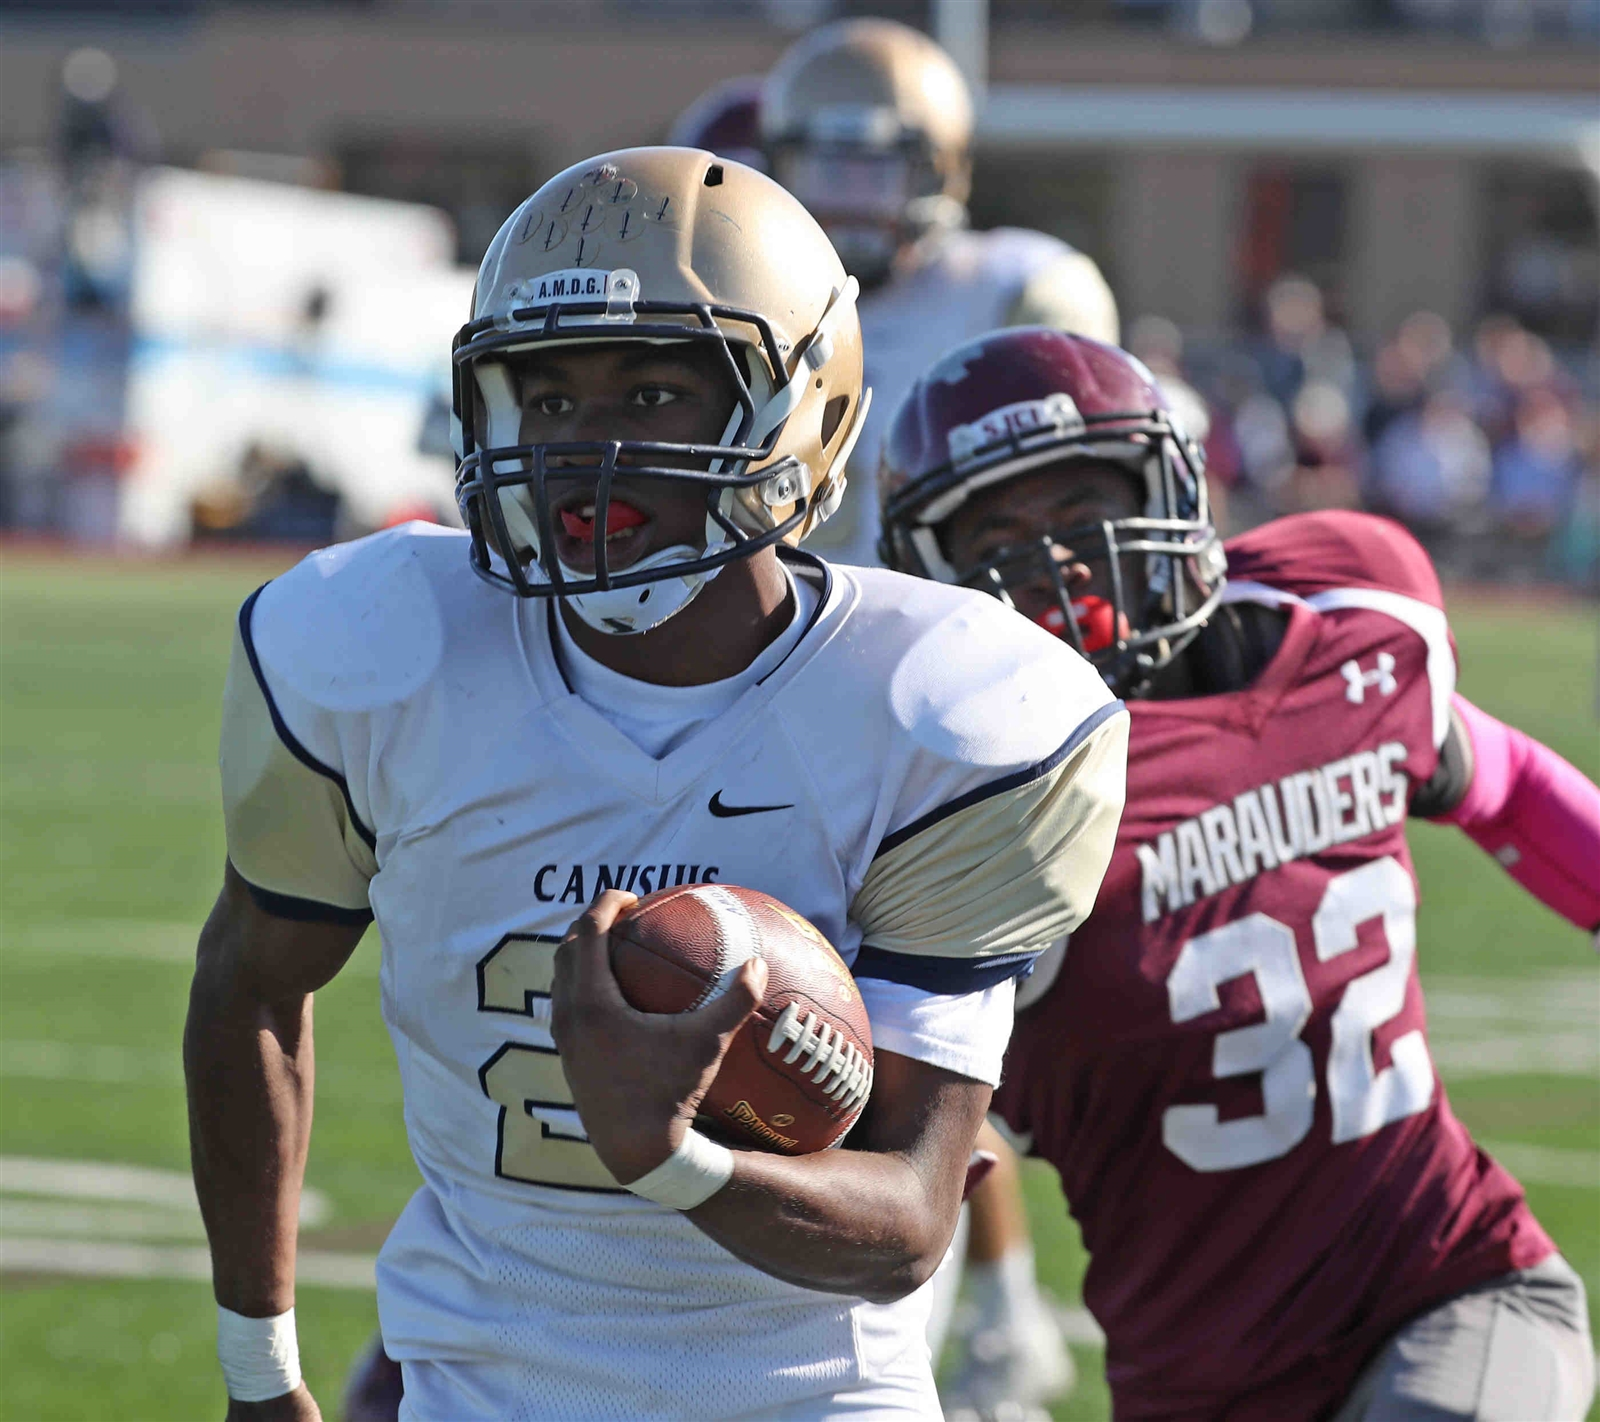 Raeqwon Greer of Canisius rushes for a touchdown during a recent game against St Joe's High School. (James P. McCoy/ Buffalo News)